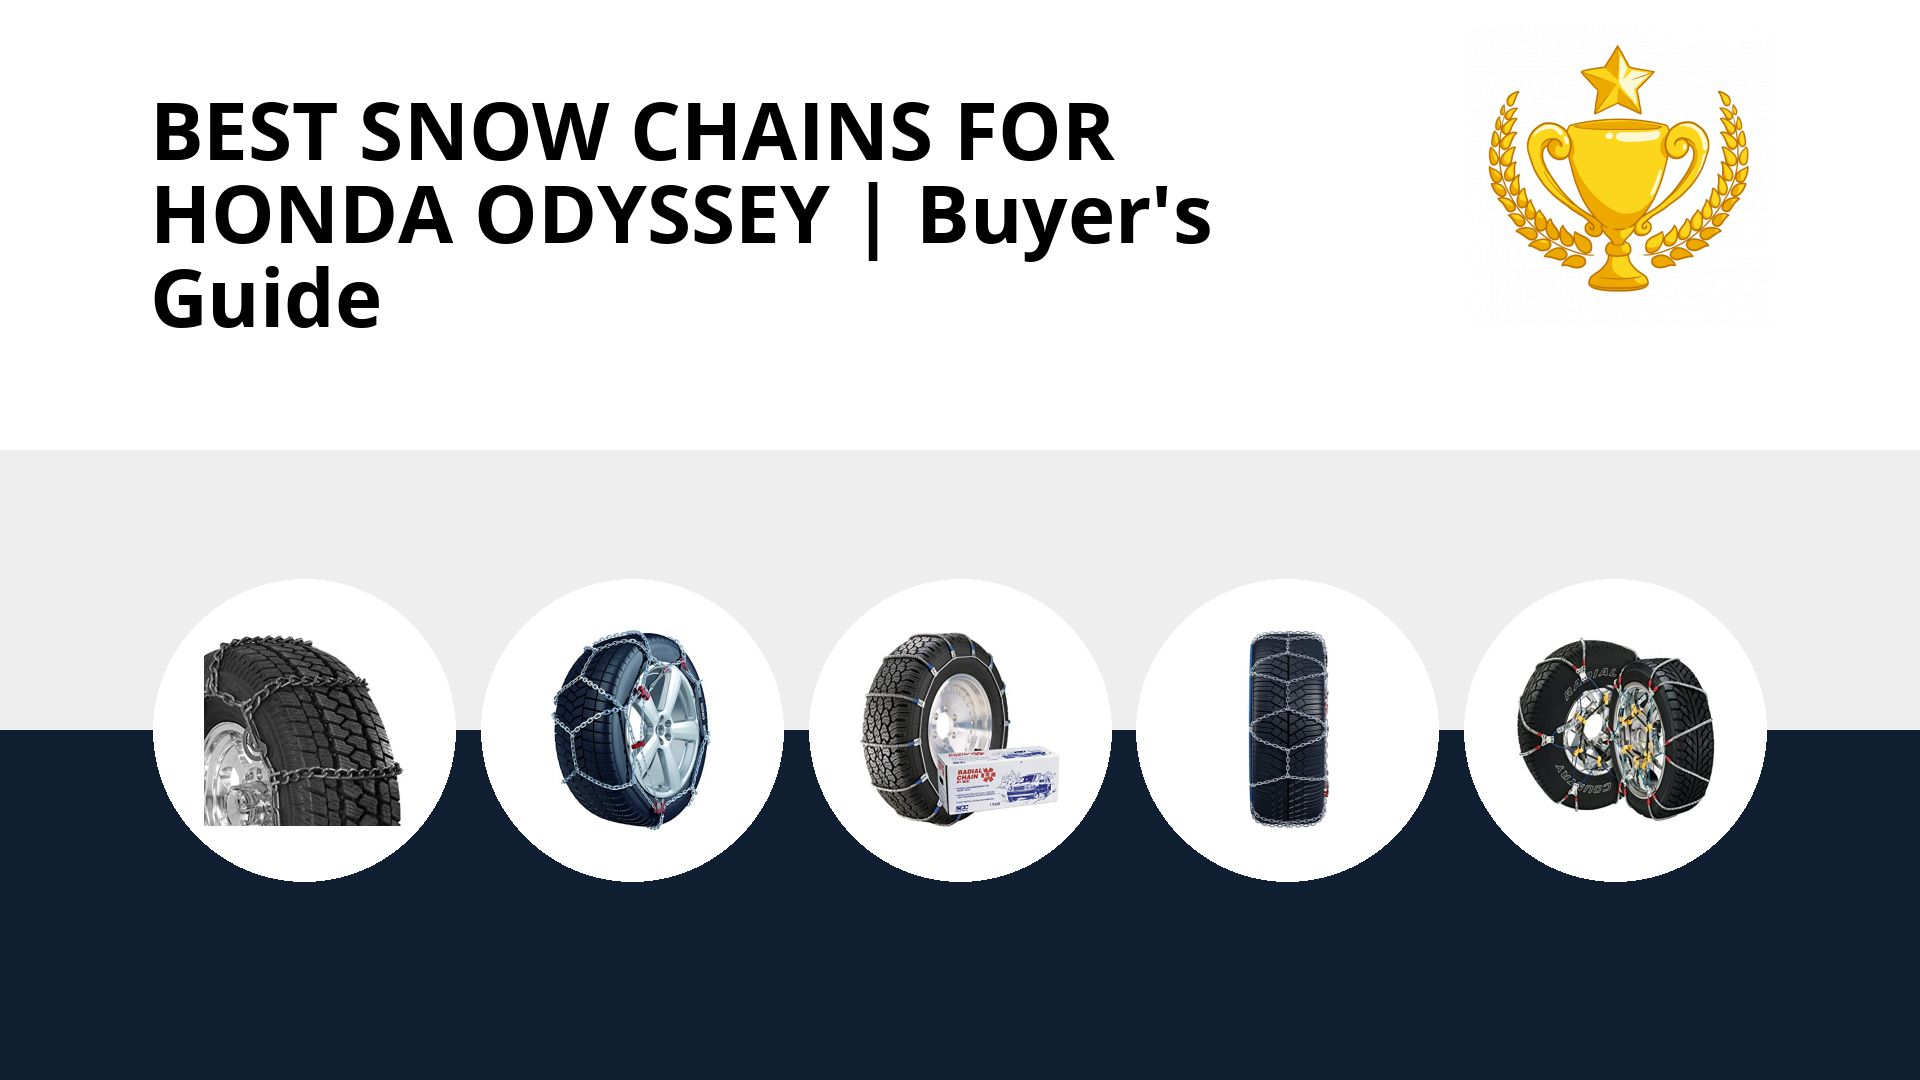 Best Snow Chains For Honda Odyssey: image